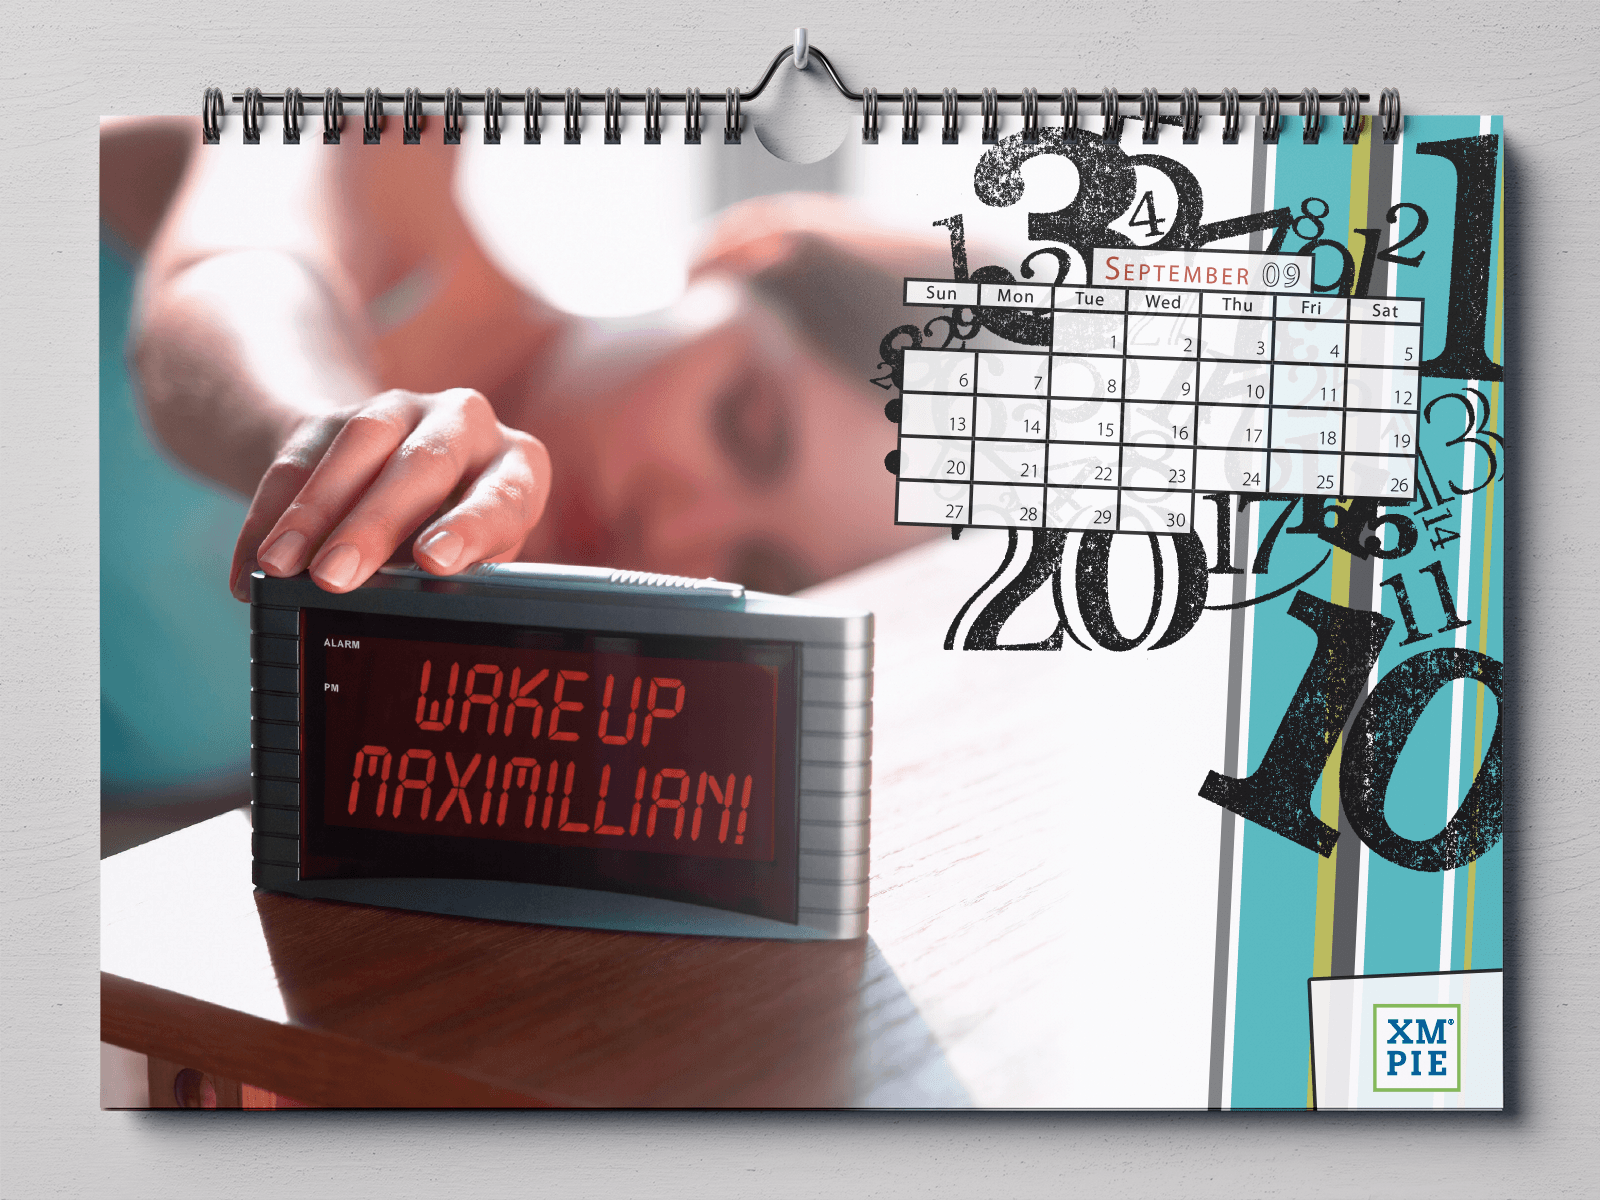 http://bigeyes.co.il/wp-content/uploads/2019/07/college-calendar-10.png